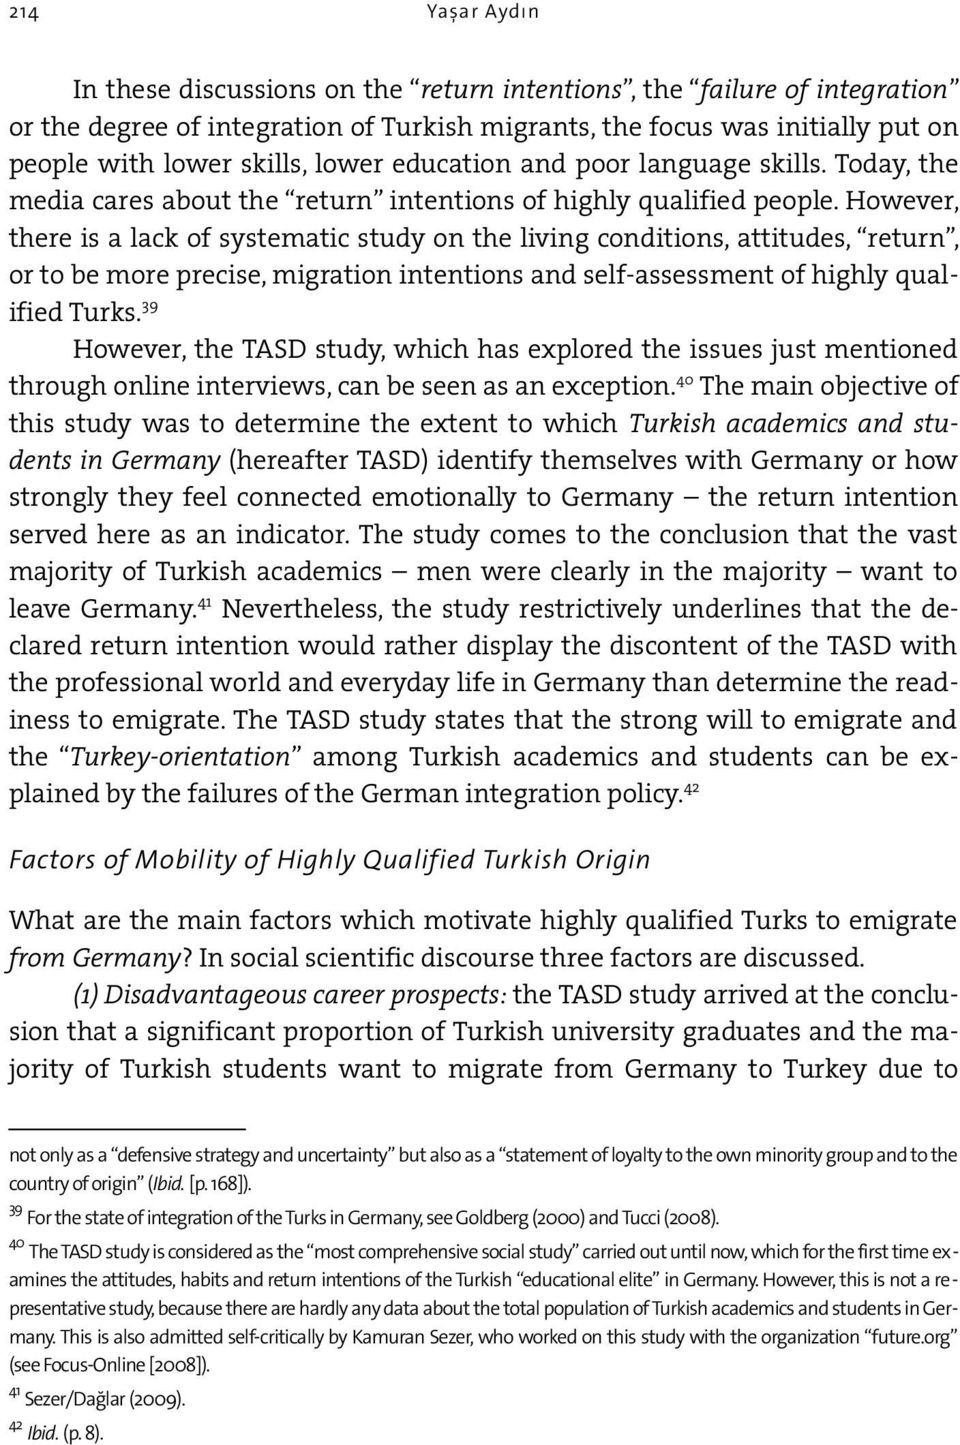 However, there is a lack of systematic study on the living conditions, attitudes, return, or to be more precise, migration intentions and self-assessment of highly qualified Turks.